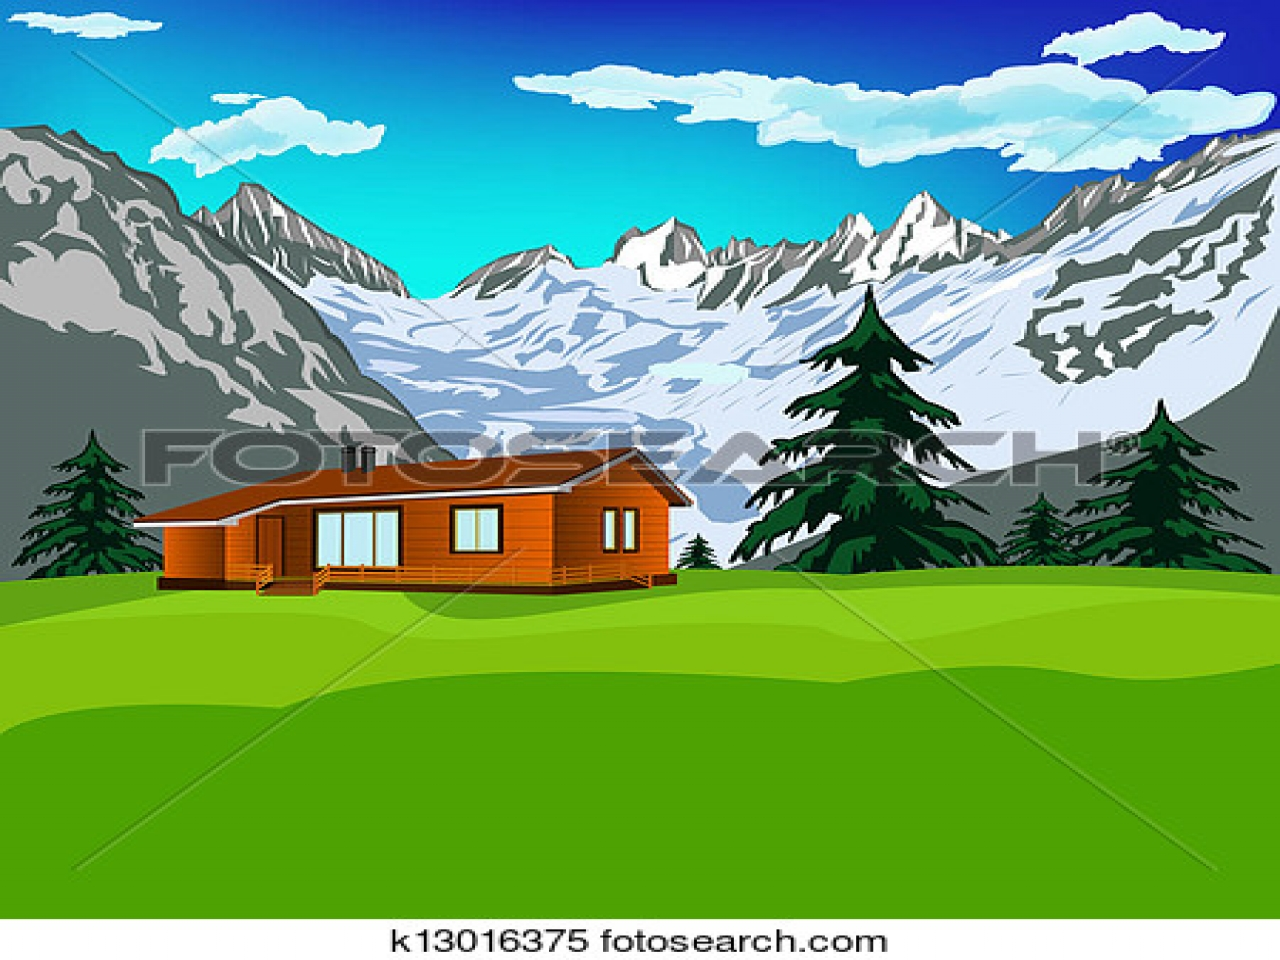 Swiss alps clipart.